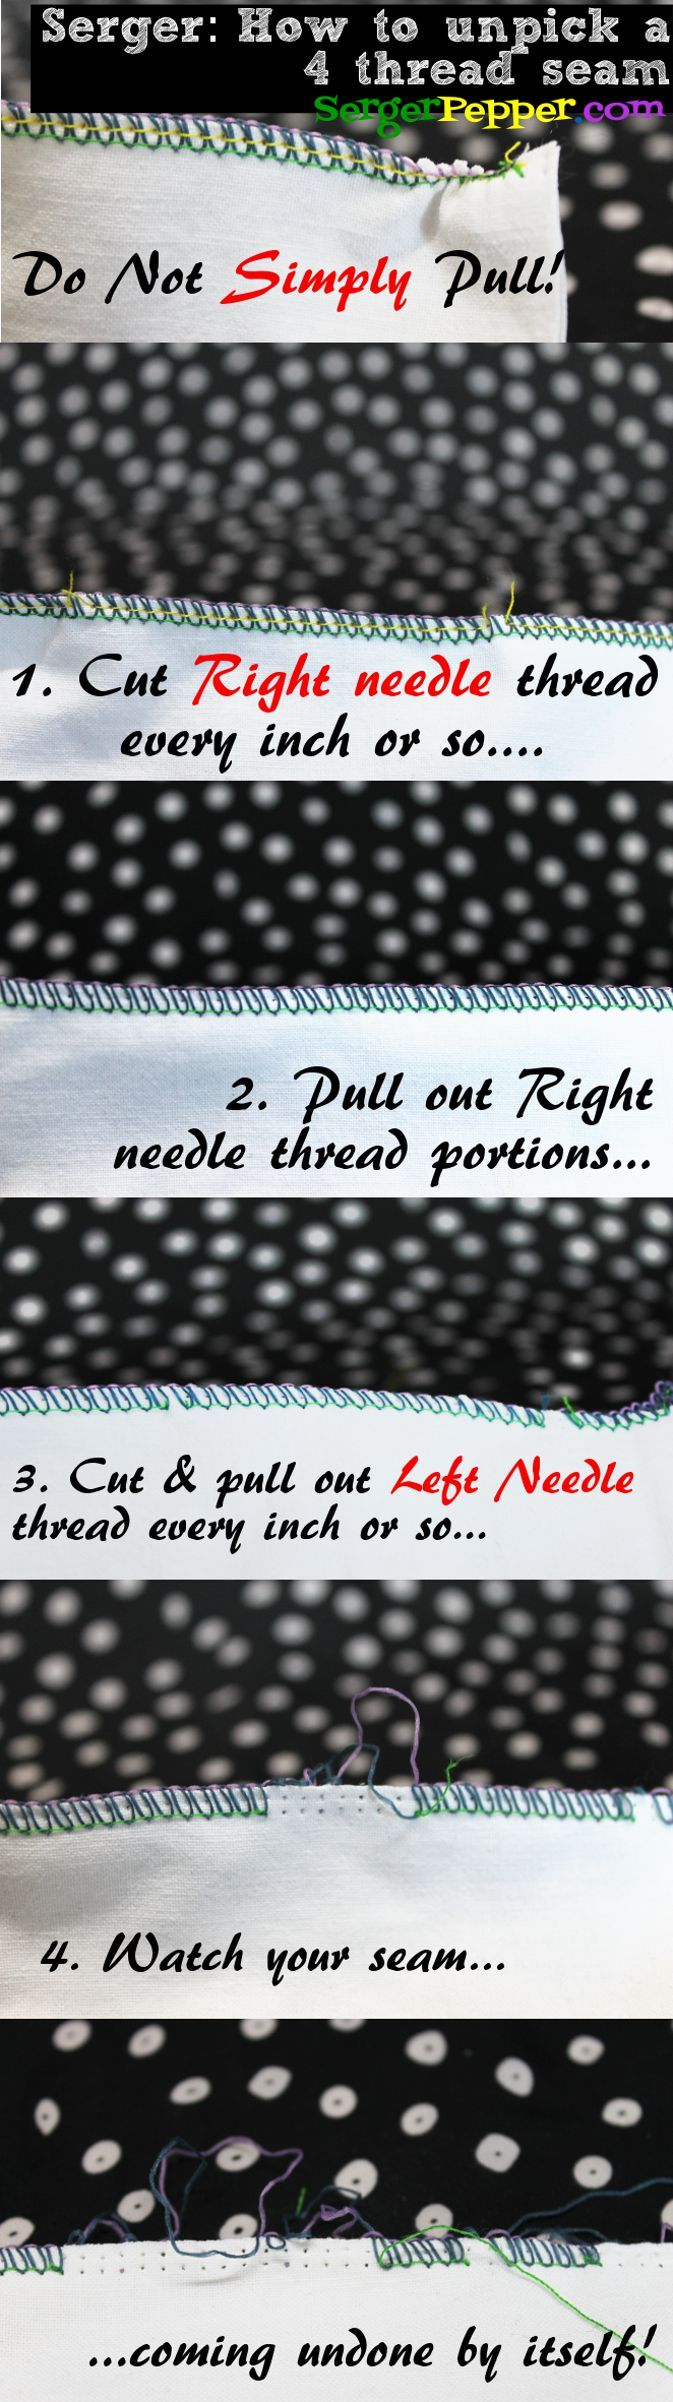 How to unpick a serger seam (3 or 4 thread overlock) the right way! Pin it for future reference ;) On SergerPepper.com